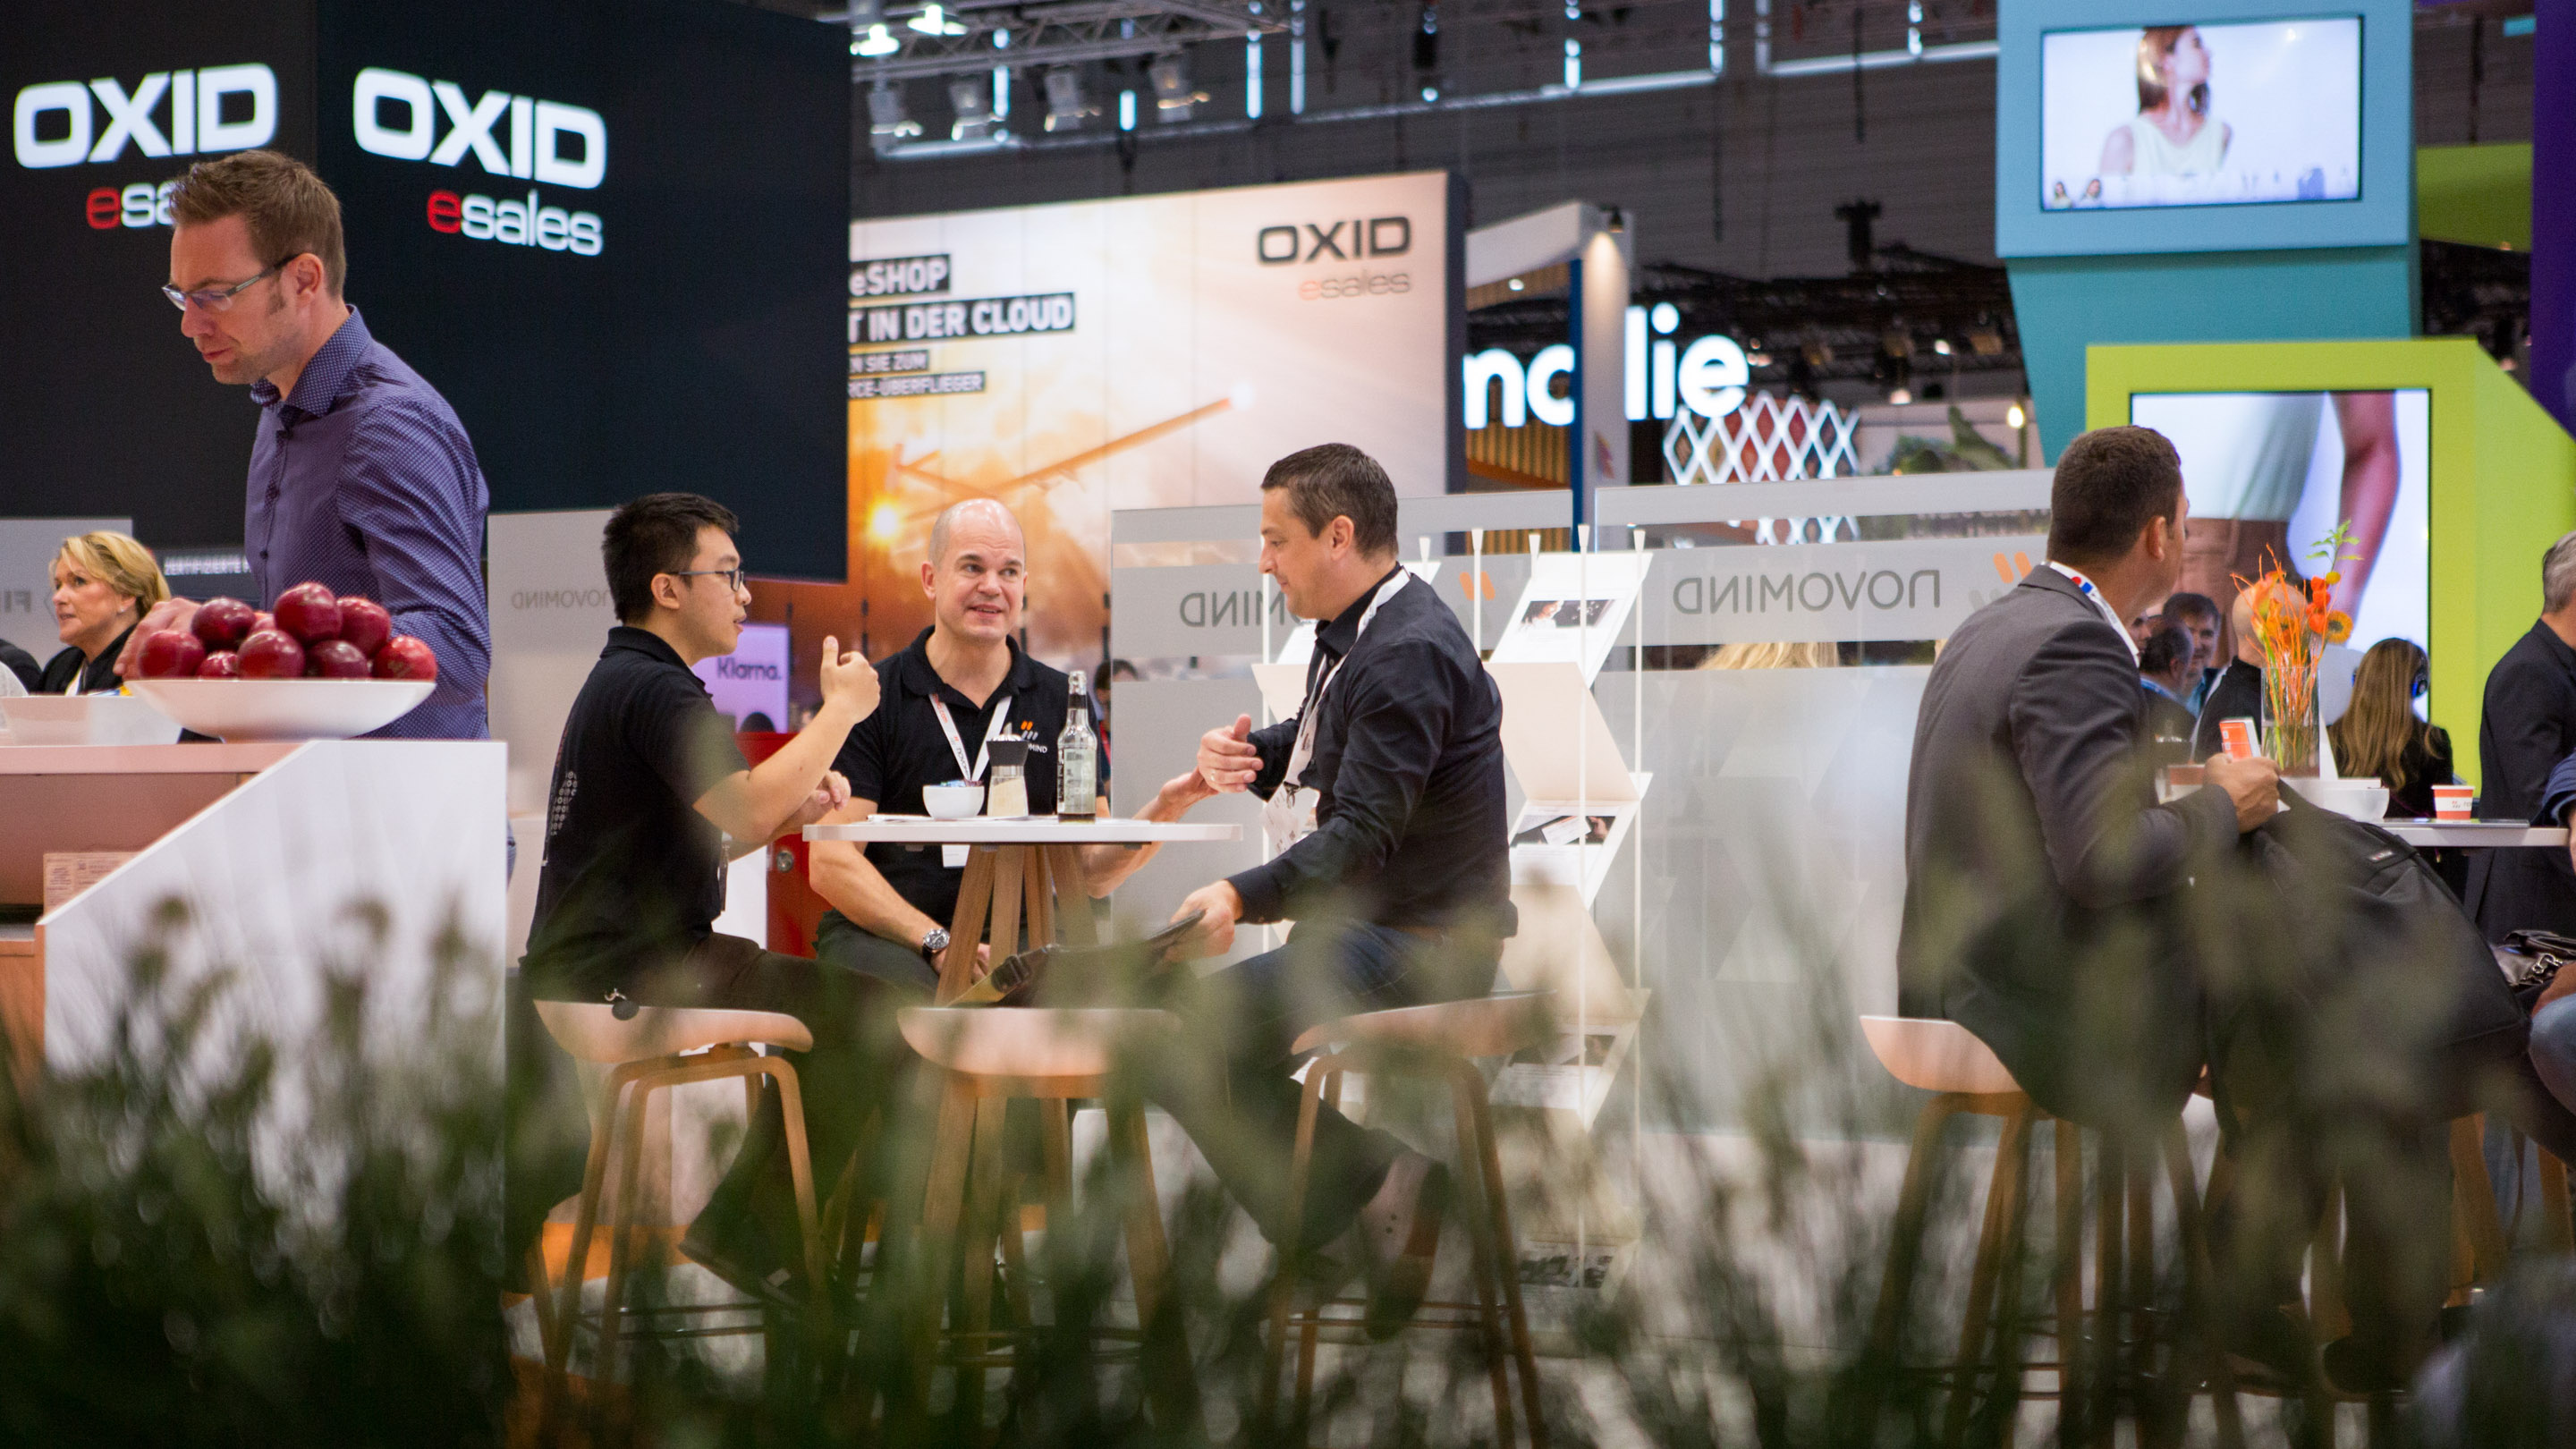 Stand: OXID, Halle 6, DMEXCO 2019